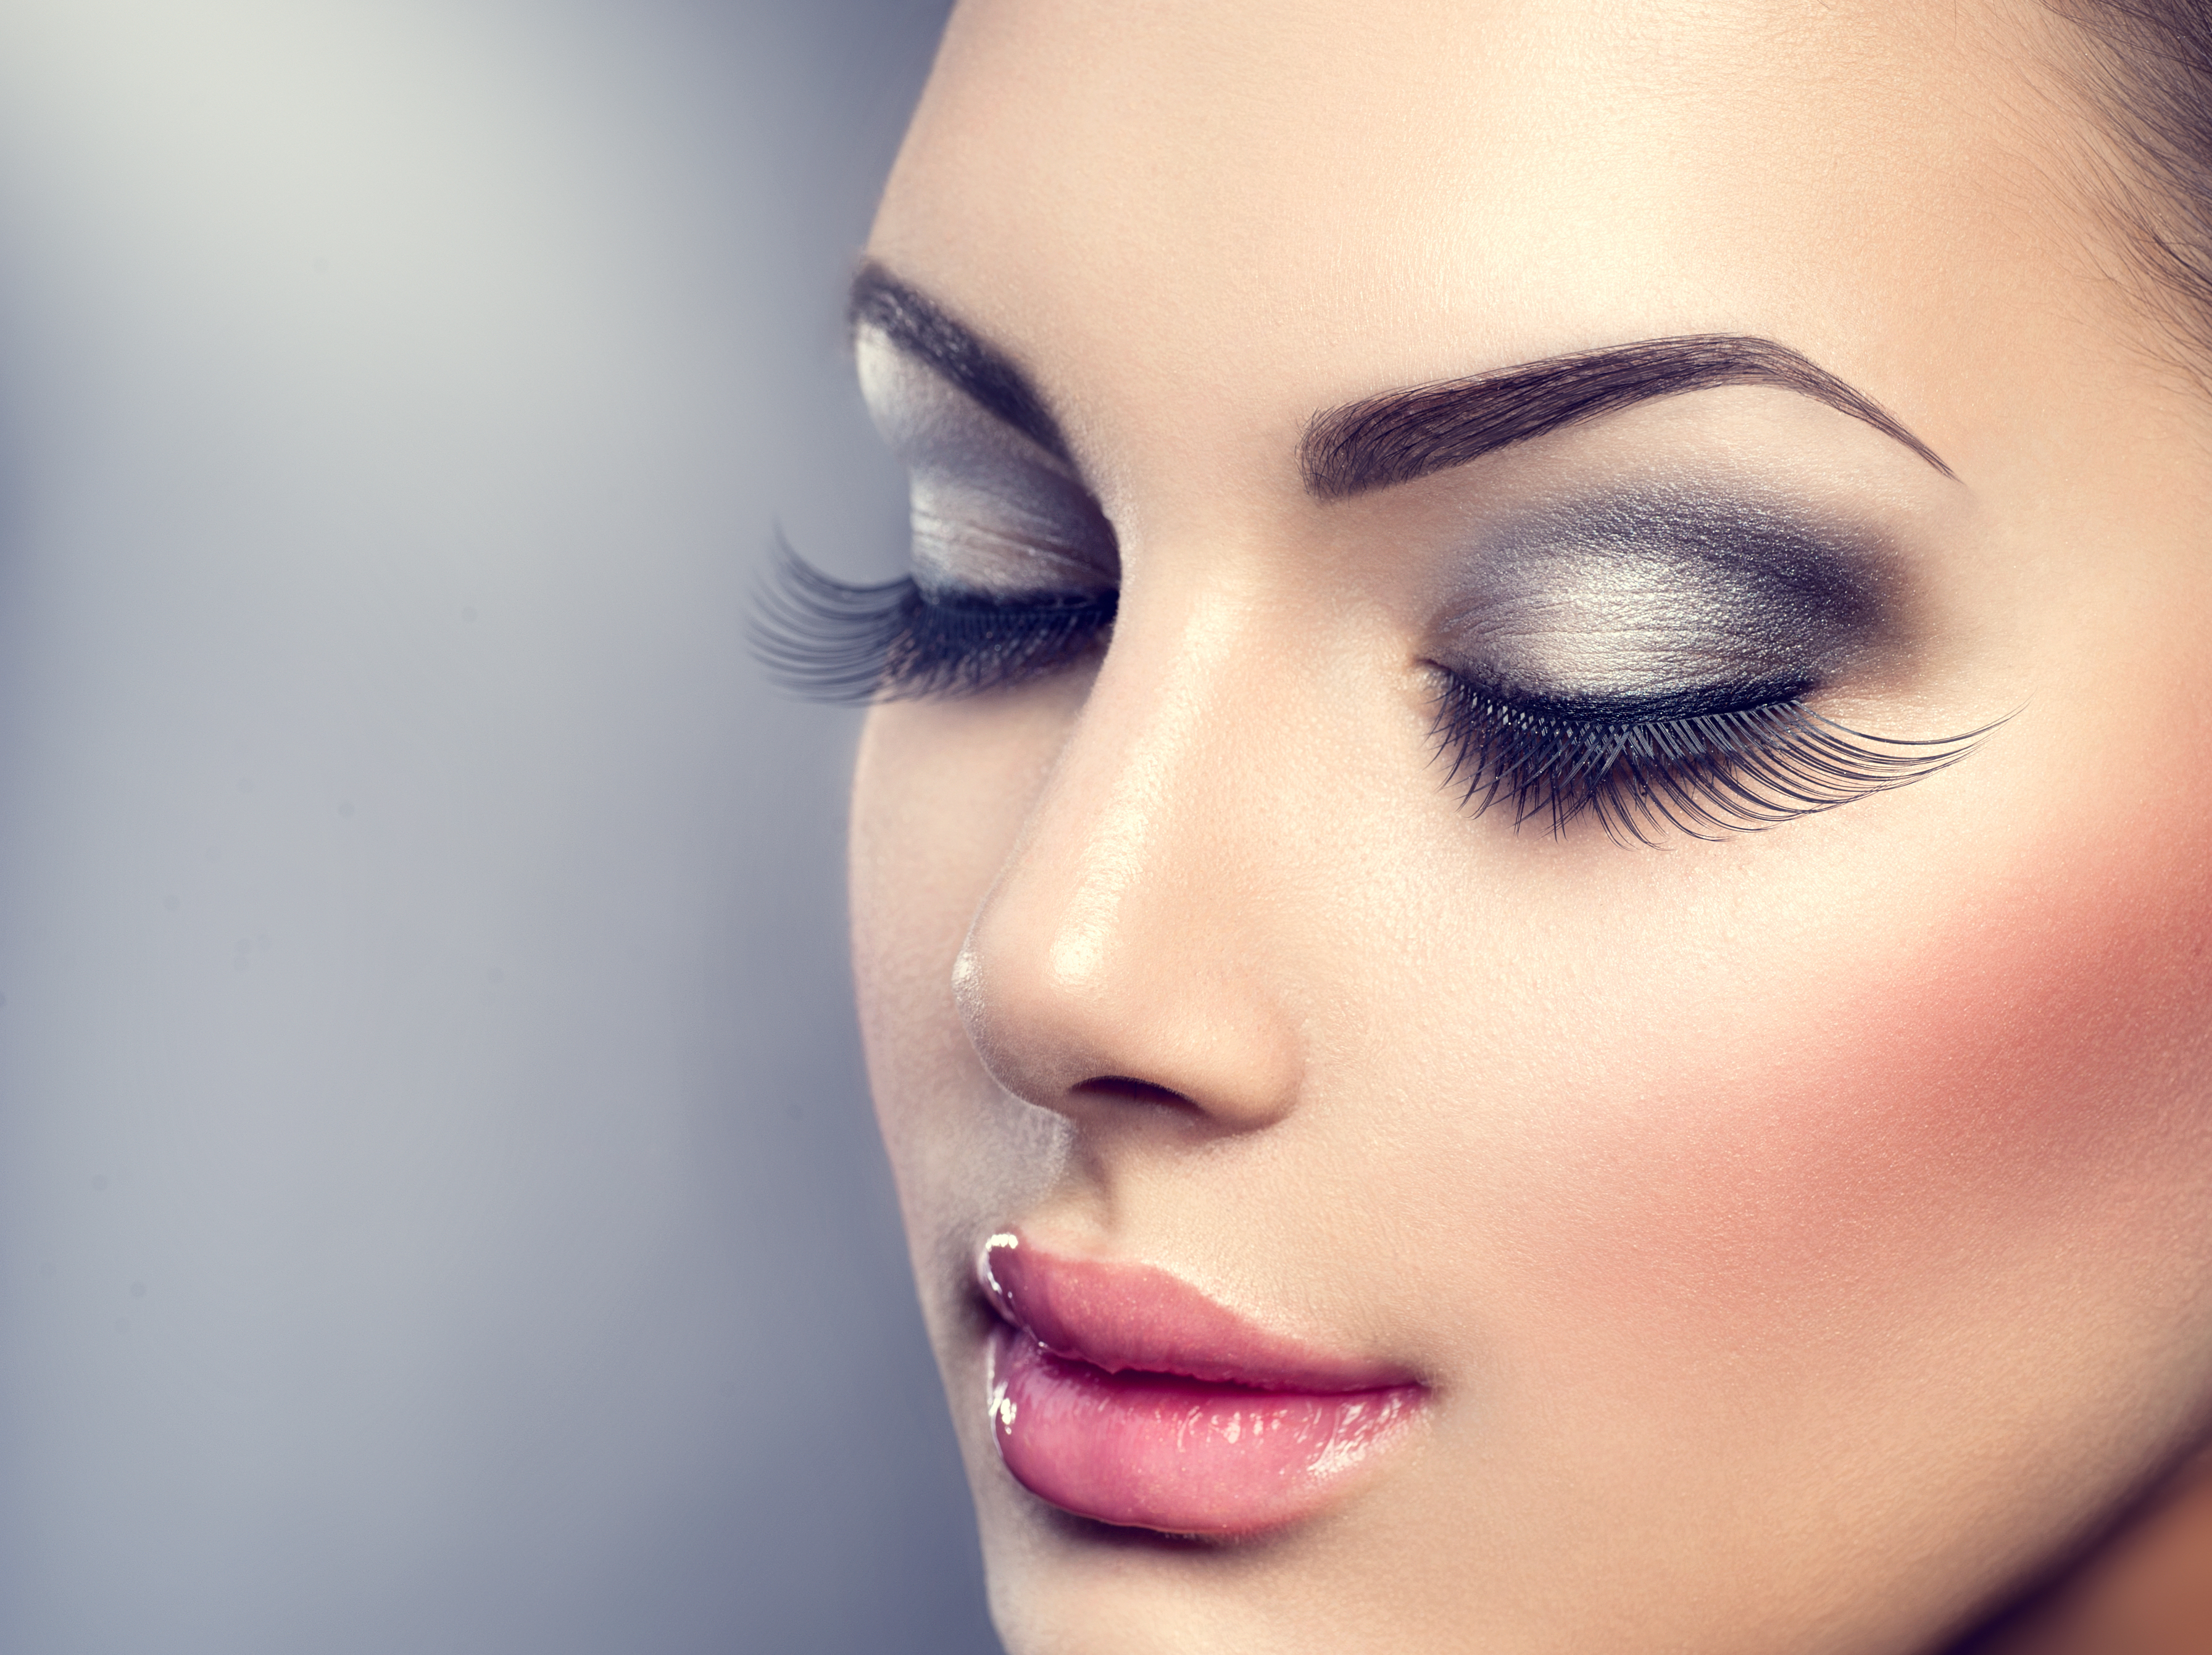 Beautiful Fashion Luxury Makeup, long ey